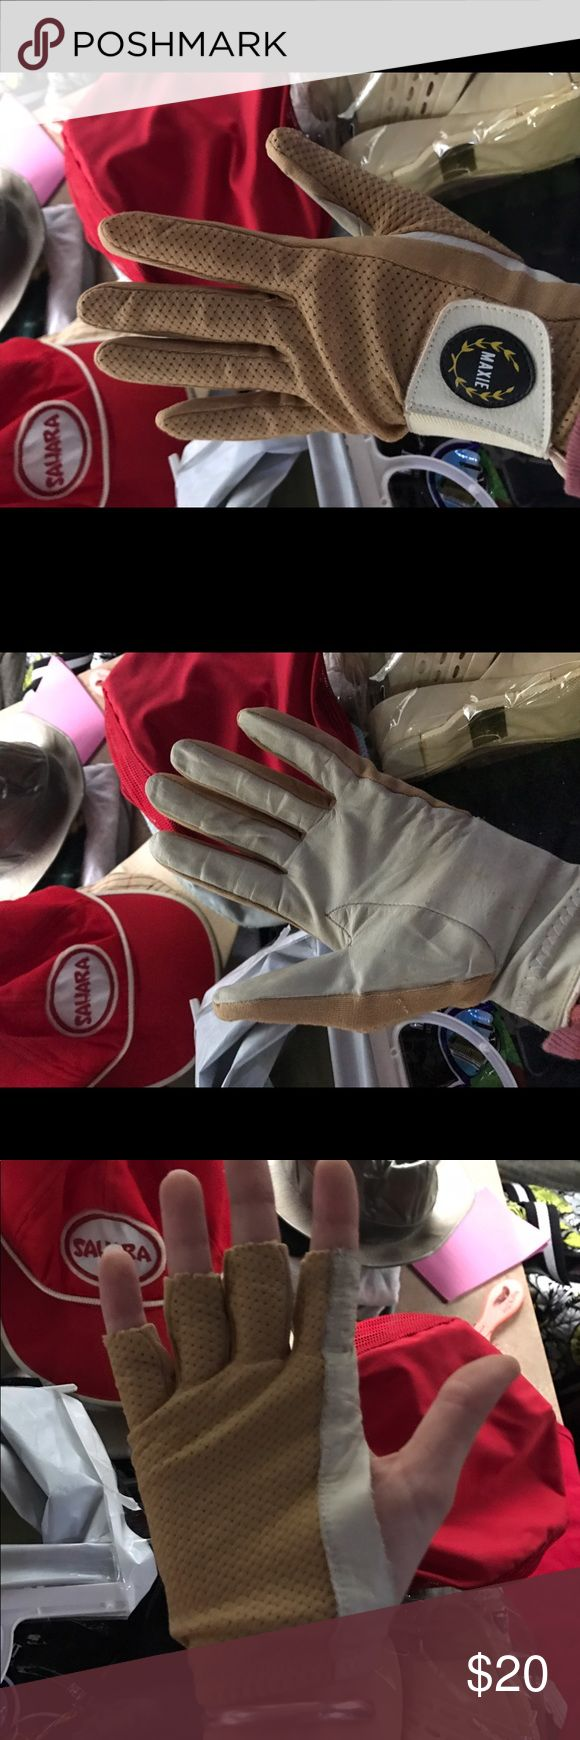 🌻Vintage🌻Golf Gloves Mustard and Cream. Vintage Gloves, I think they are golf gloves the left hand is fingerless and right is fully covered. Sweet Mustard and cream color with interesting detailing. Leather and other material(not sure) good vintage Condition.🏌🏻♀️ Vintage Accessories Gloves & Mittens